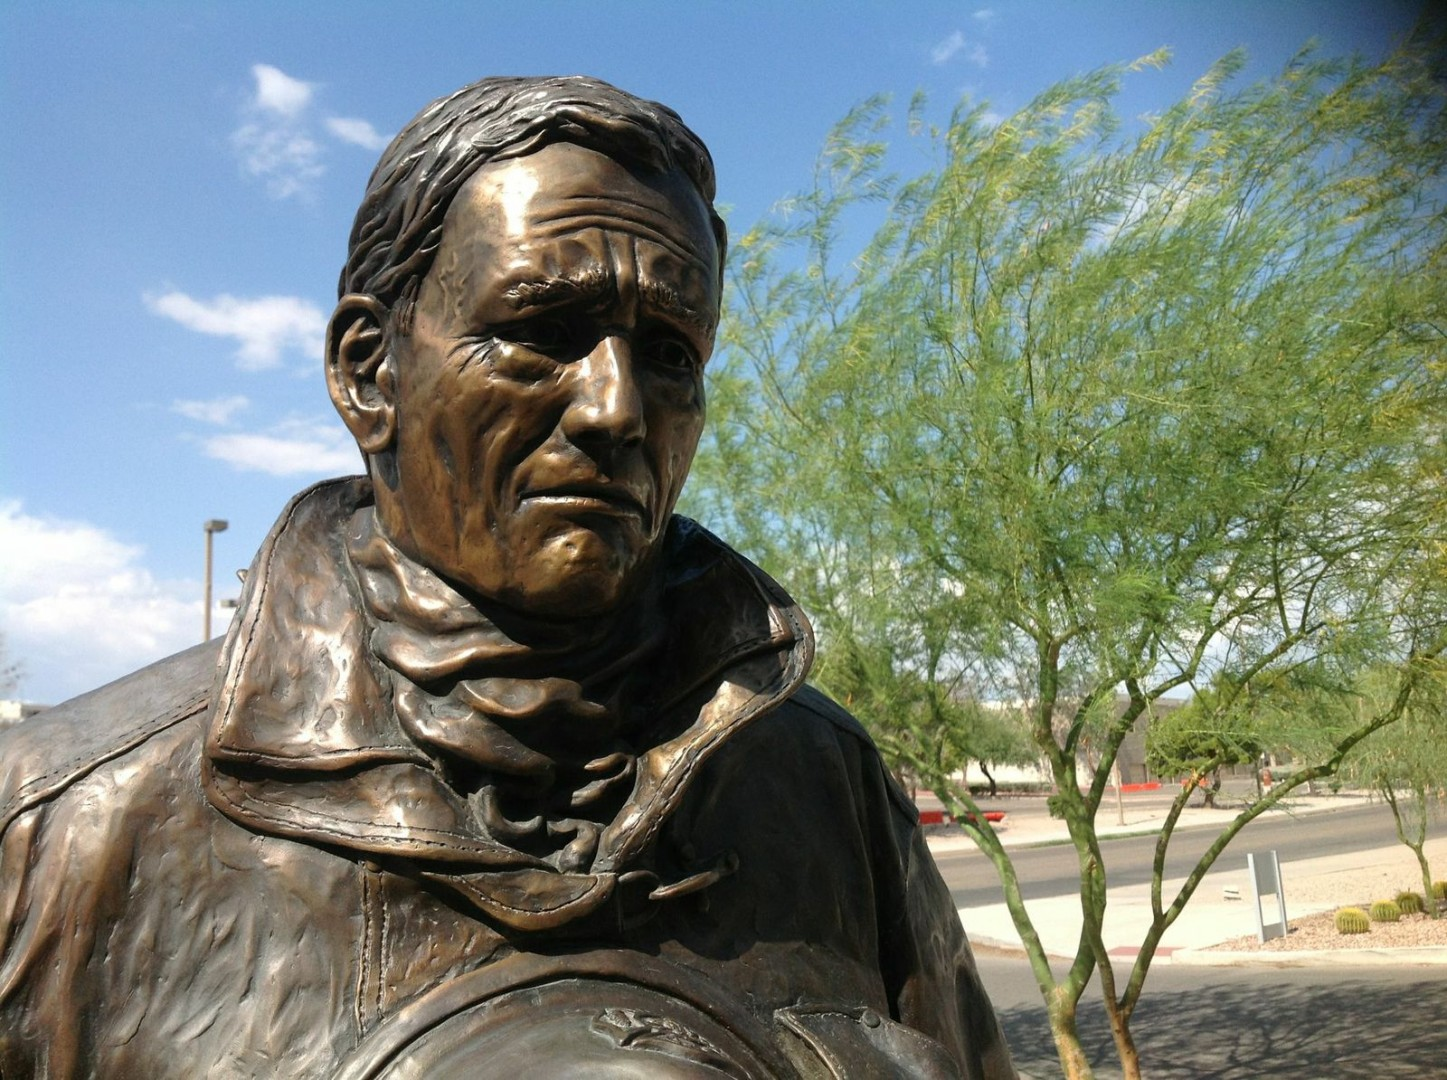 Tuscon, Arizona based 911 Sculpture to be featured on Good Company documentary series, produced by MultiView, undated | Photo courtesy of MultiView, St. George News